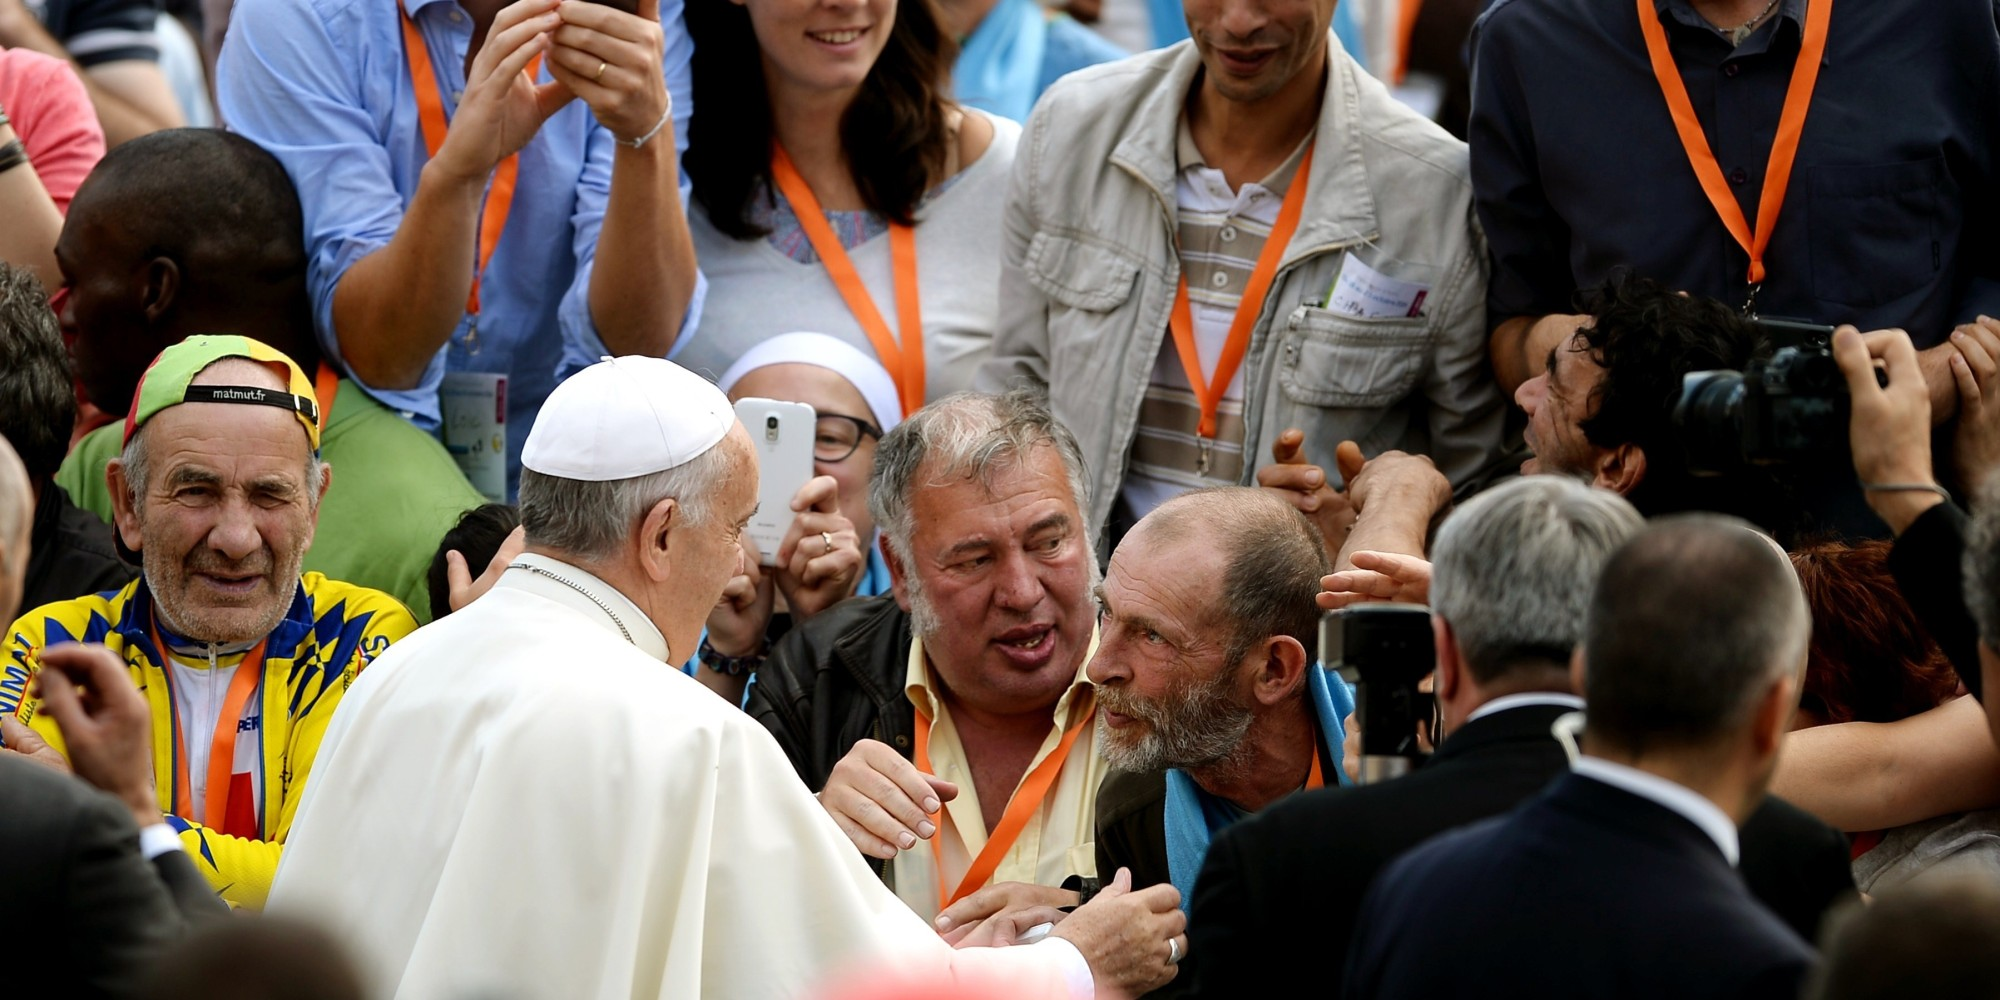 French homeless from different French cities, shake hands with Pope Francis upon his arrival for his weekly general audience in St Peter's square at the Vatican on October 22, 2014.  AFP PHOTO / FILIPPO MONTEFORTE        (Photo credit should read FILIPPO MONTEFORTE/AFP/Getty Images)